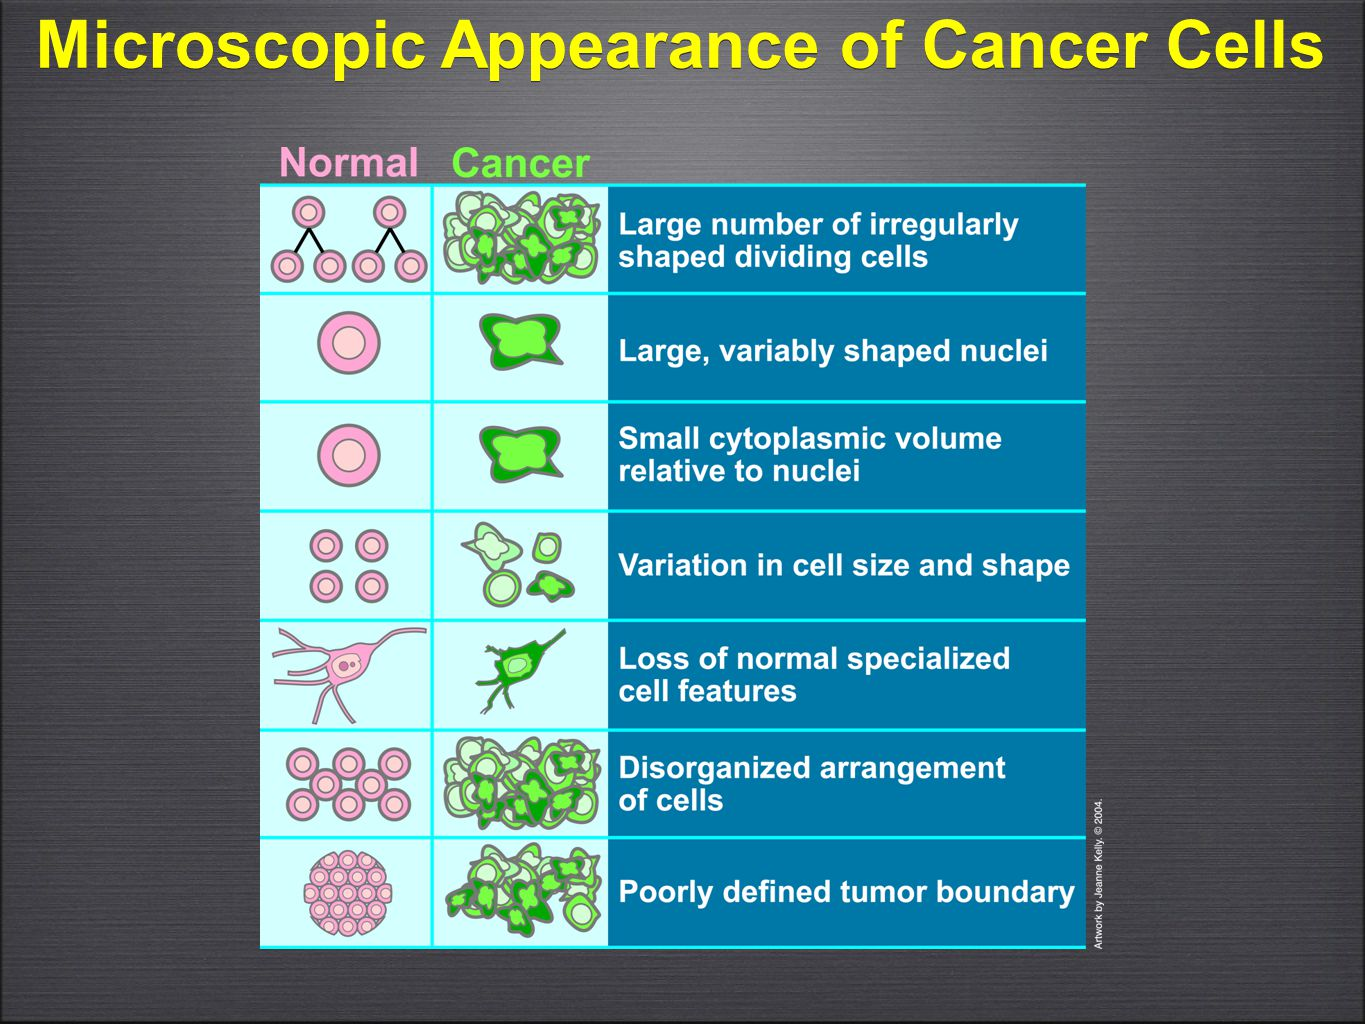 Microscopic Appearance of Cancer Cells